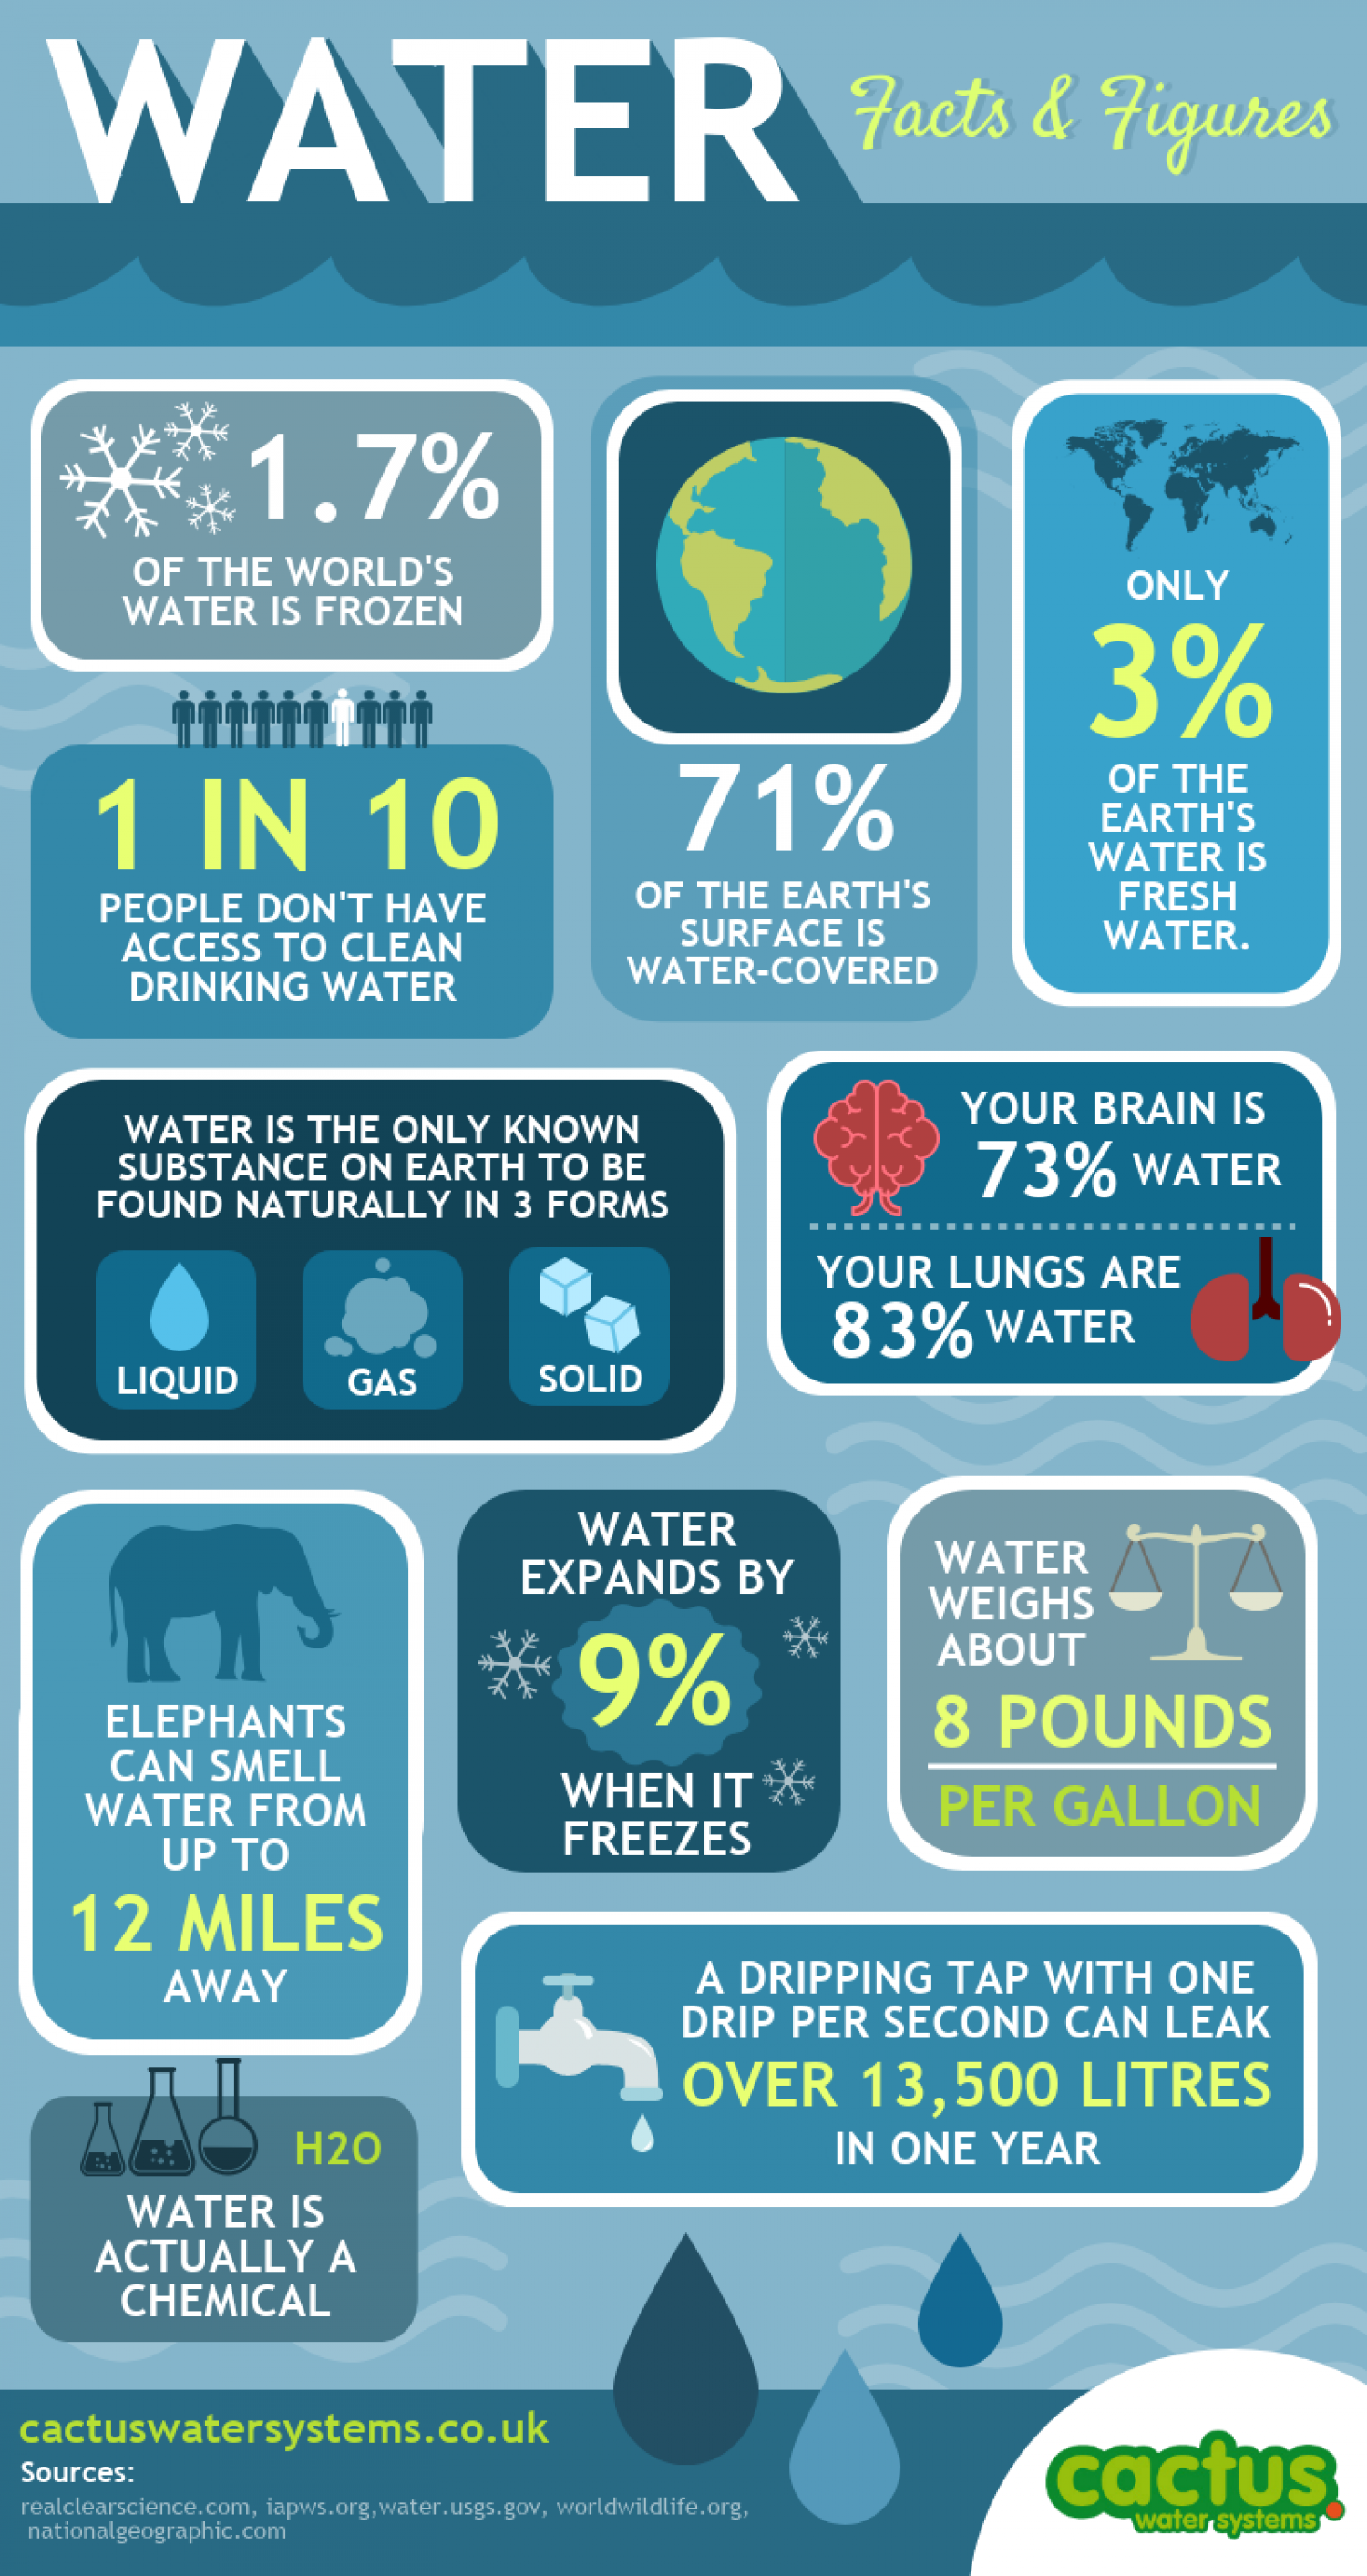 WATER - Facts and Figures Infographic